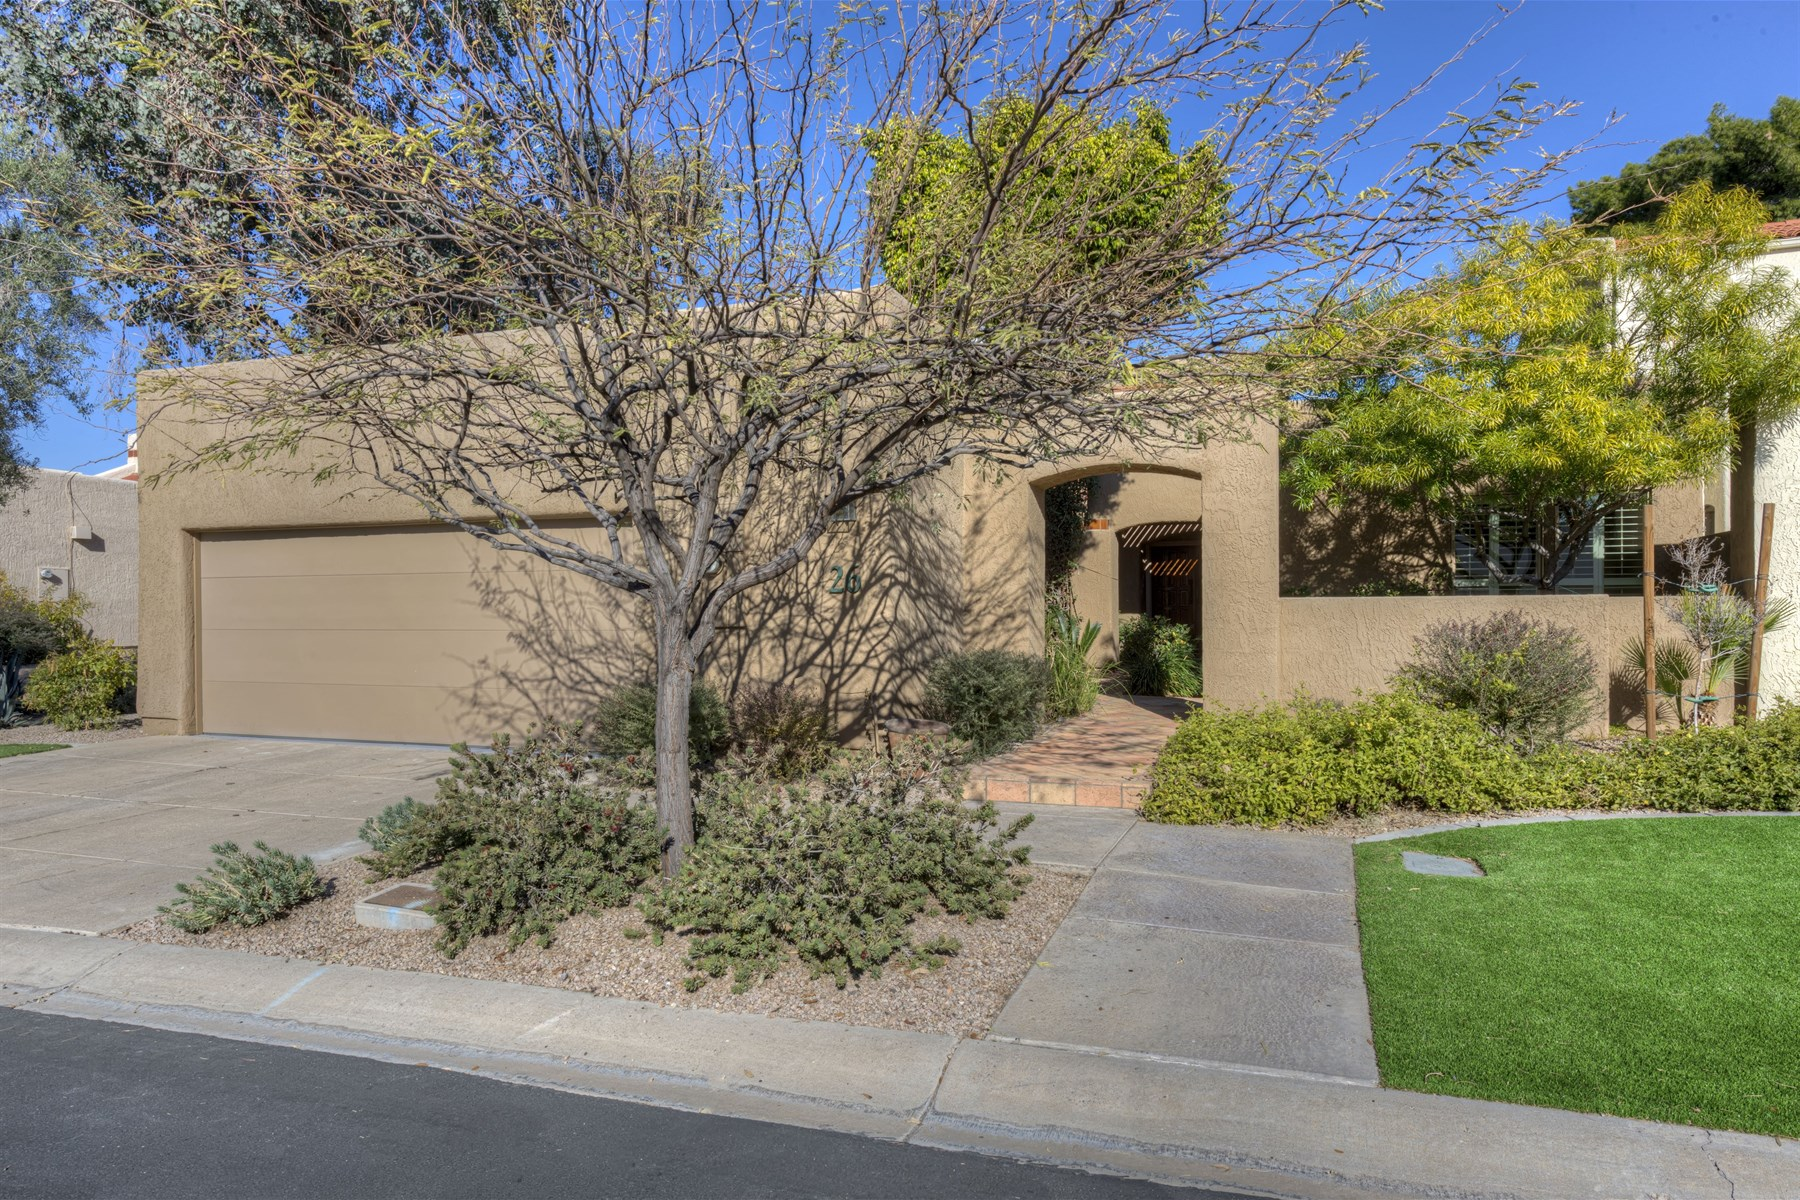 Villa per Vendita alle ore Beautifully maintained, highly sought after single level patio home 2626 E Arizona Biltmore Circle #26 Phoenix, Arizona, 85016 Stati Uniti